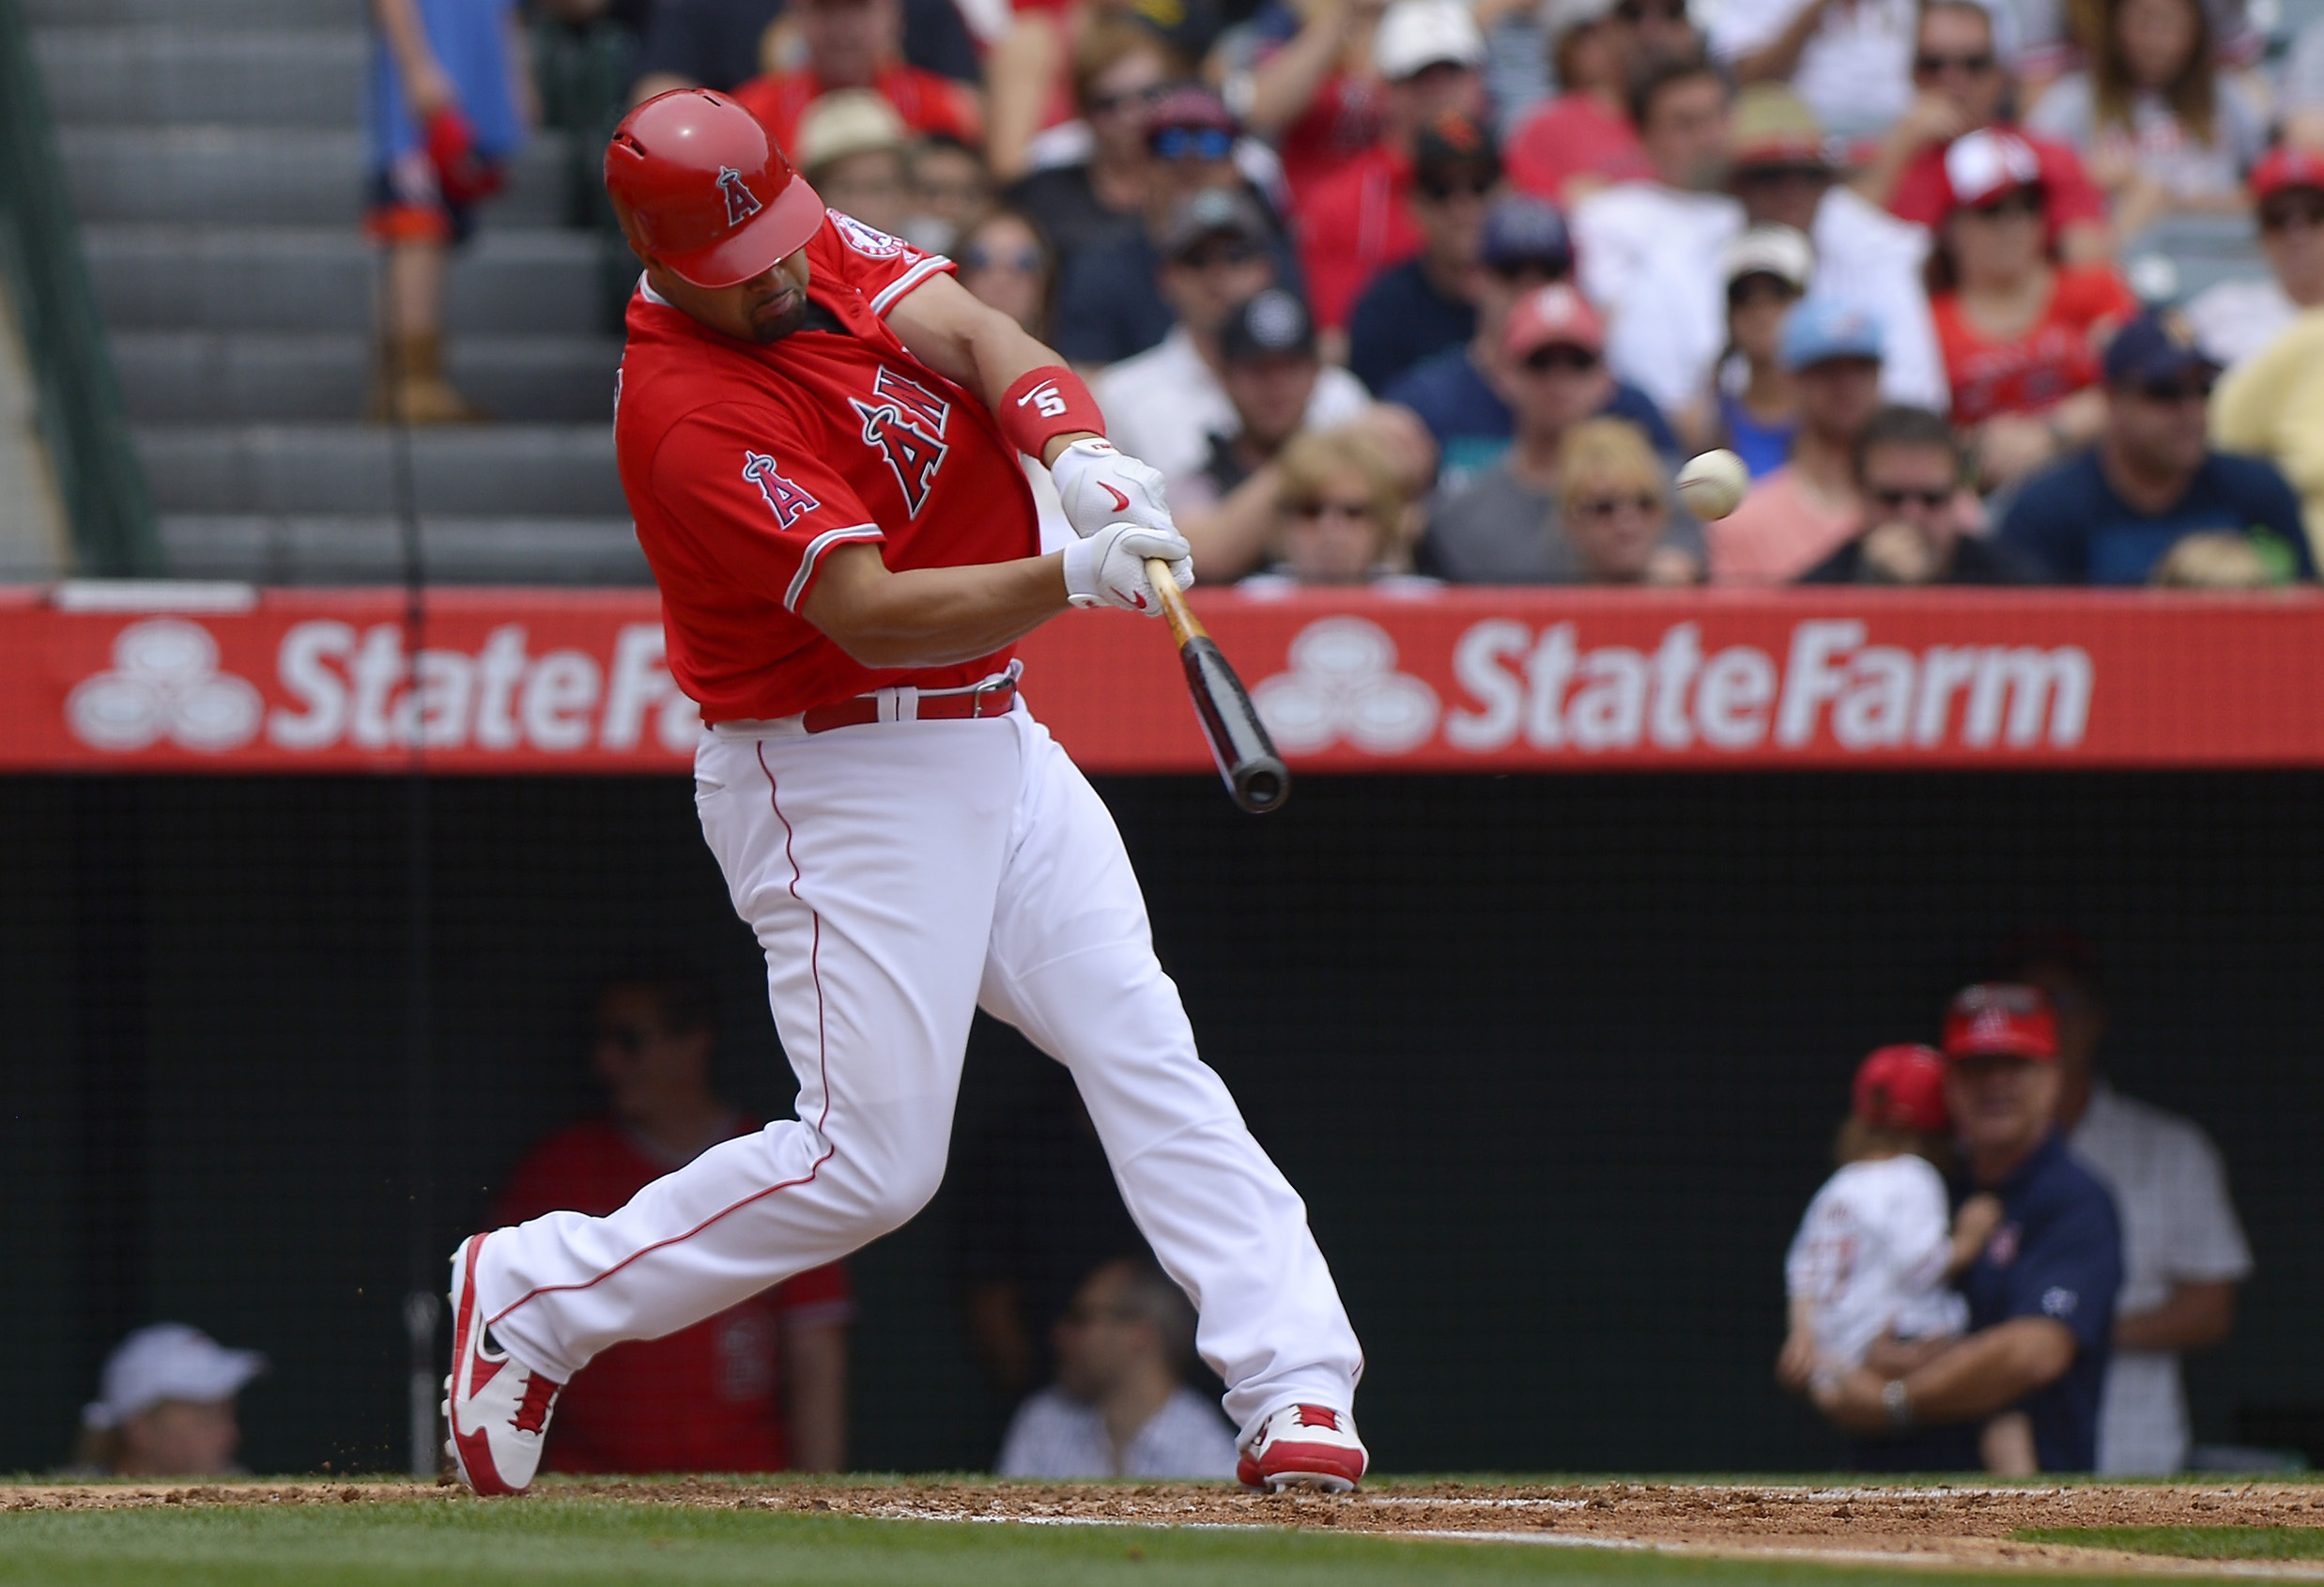 Los Angeles Angels' Albert Pujols hits a two-run home run during the first inning of a baseball game against the Seattle Mariners, Sunday, April 24, 2016, in Anaheim, Calif. (AP Photo/Mark J. Terrill)